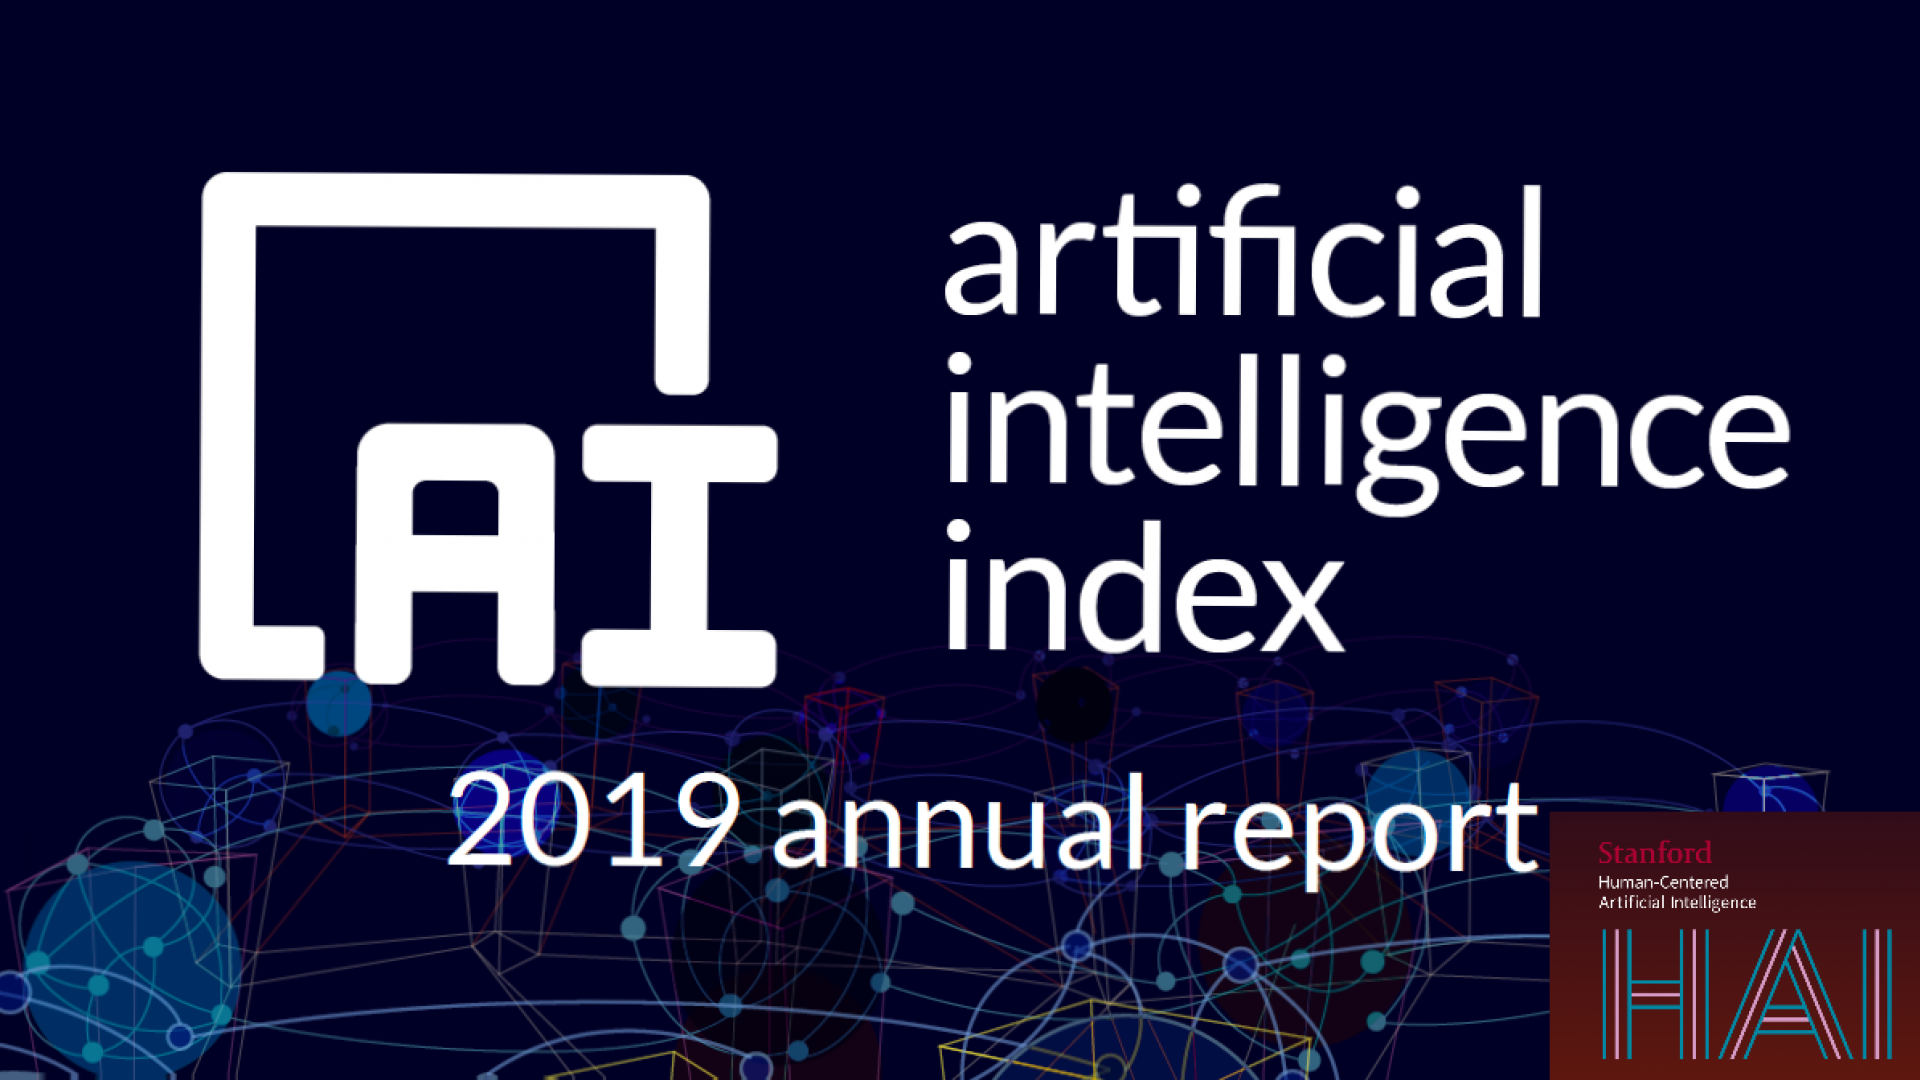 AI Index 2019 Annual Report